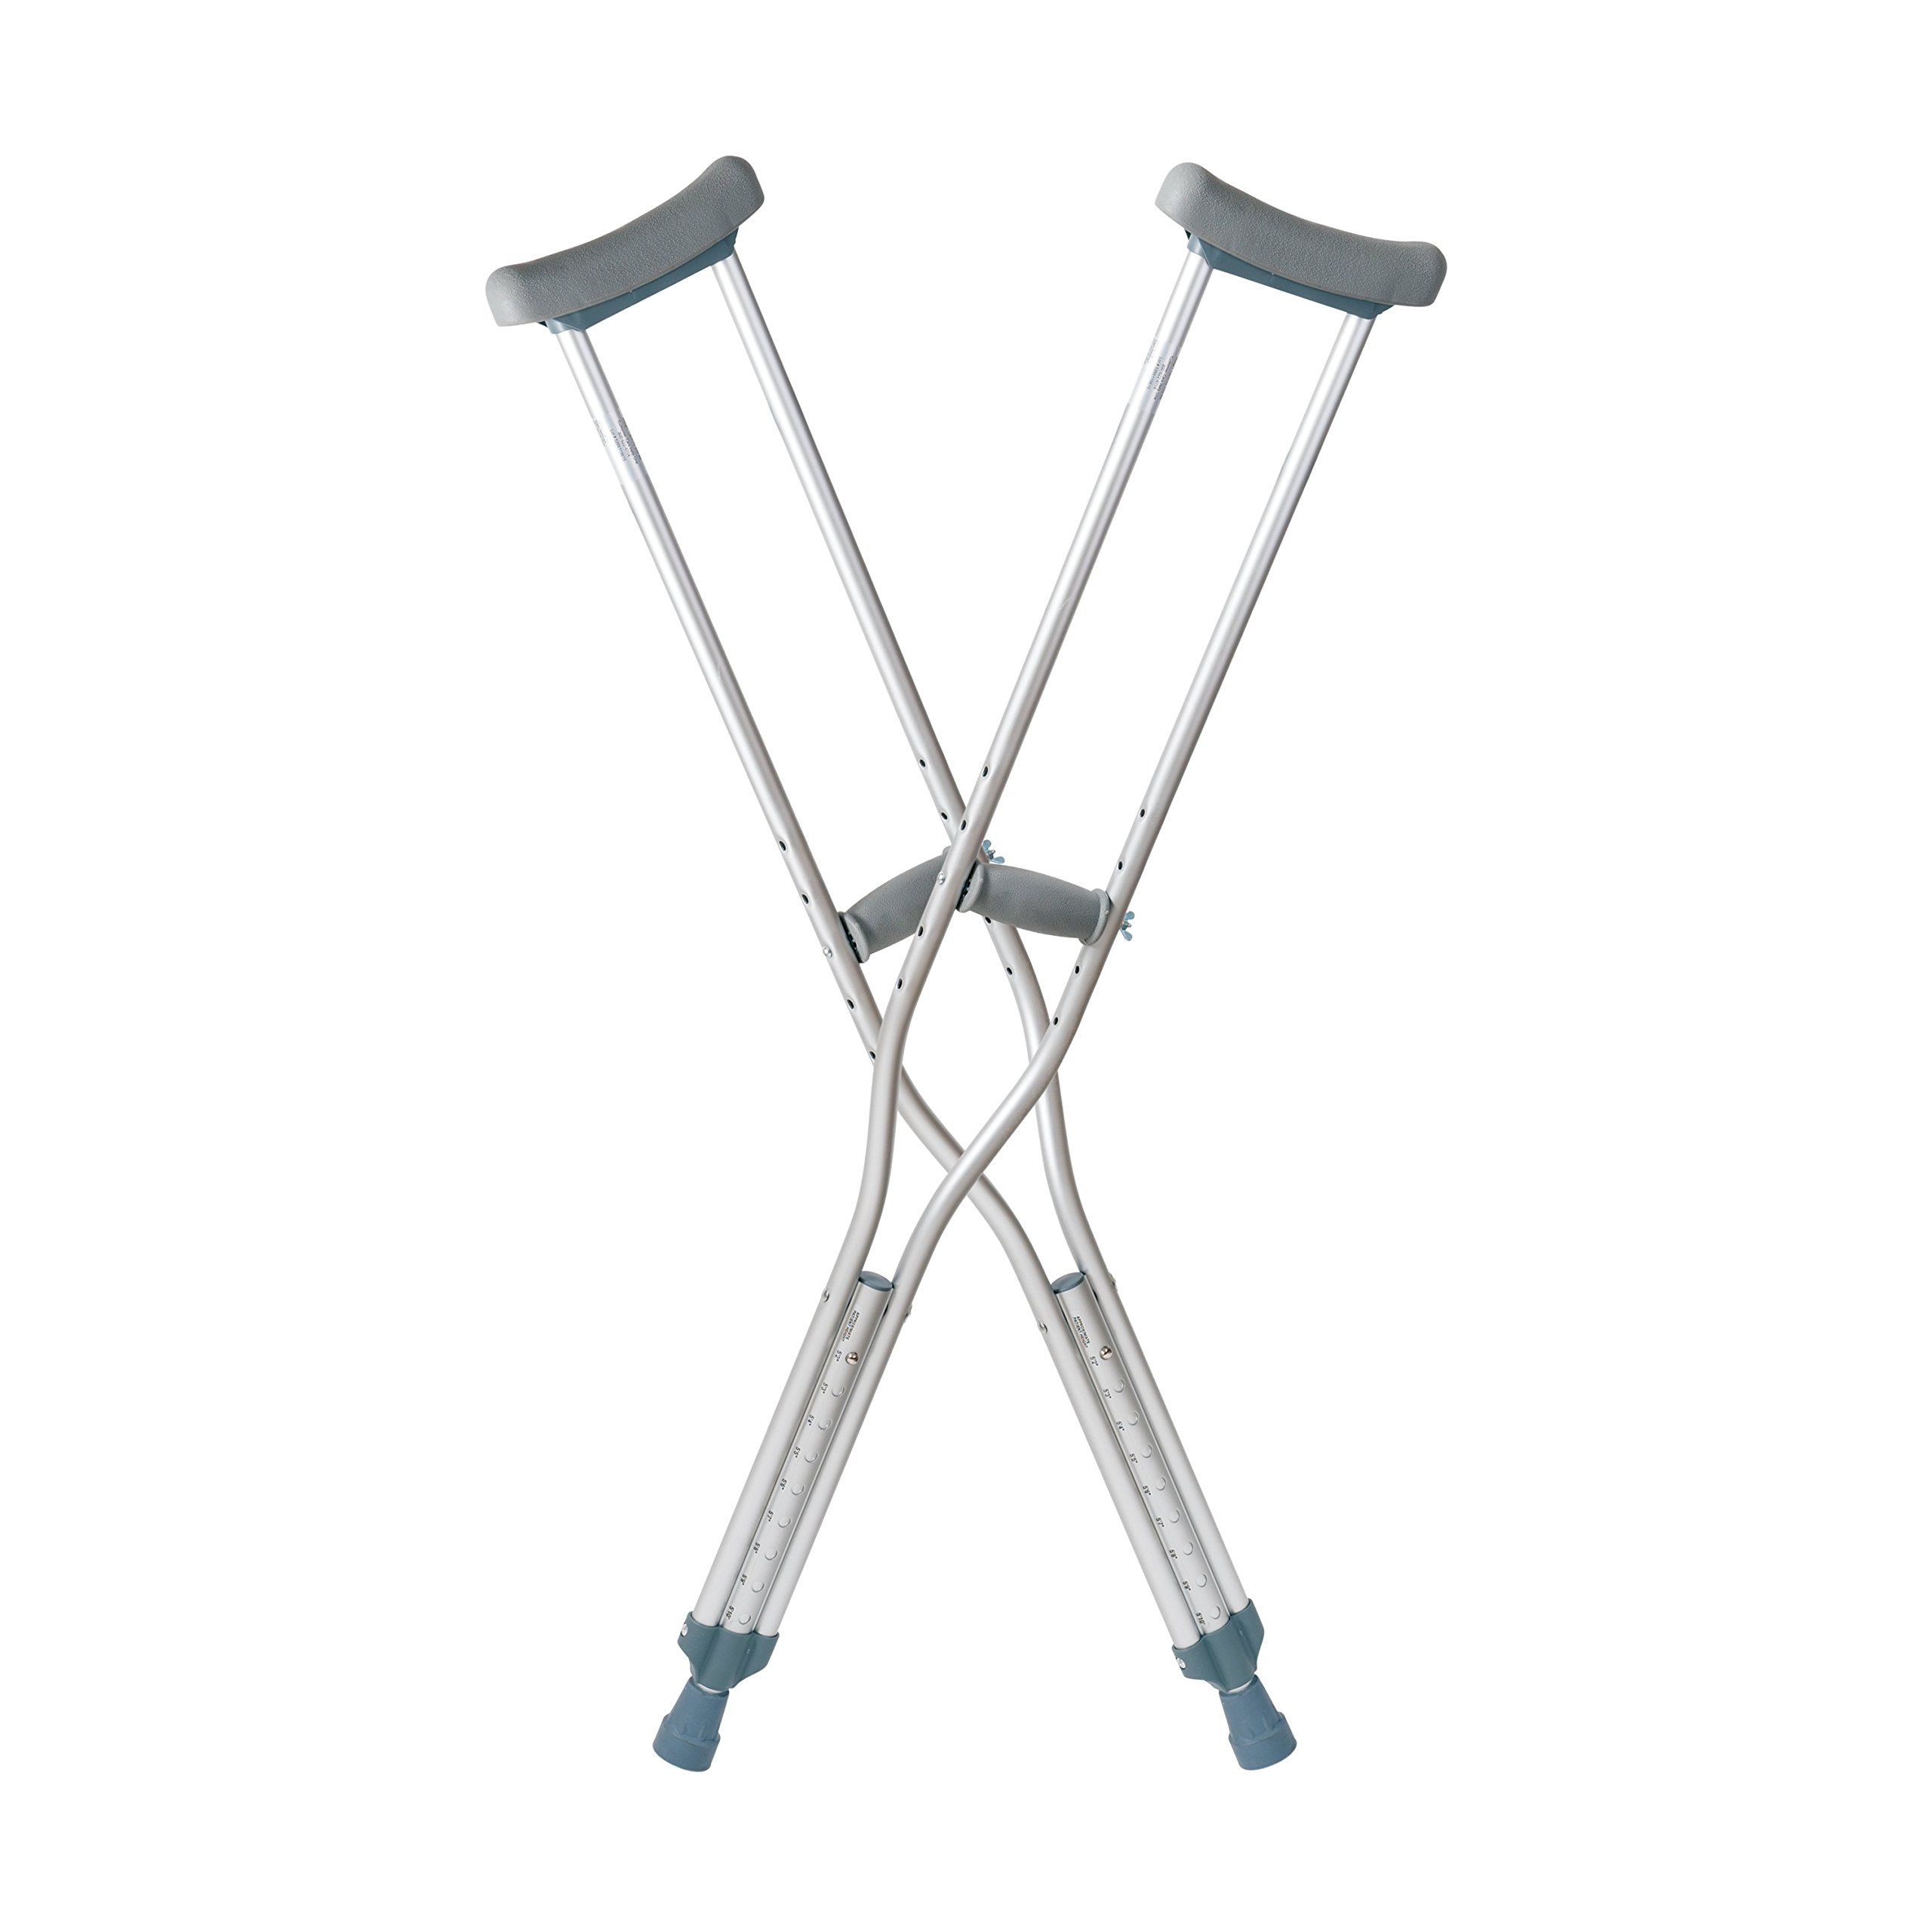 DMI Lightweight Push-Button Adjustable Aluminum Crutches with Pads, Tips and Handgrips Accessories, Youth 4'7'' to 5'2'', Silver and Gray, 8 Pairs of Crutches